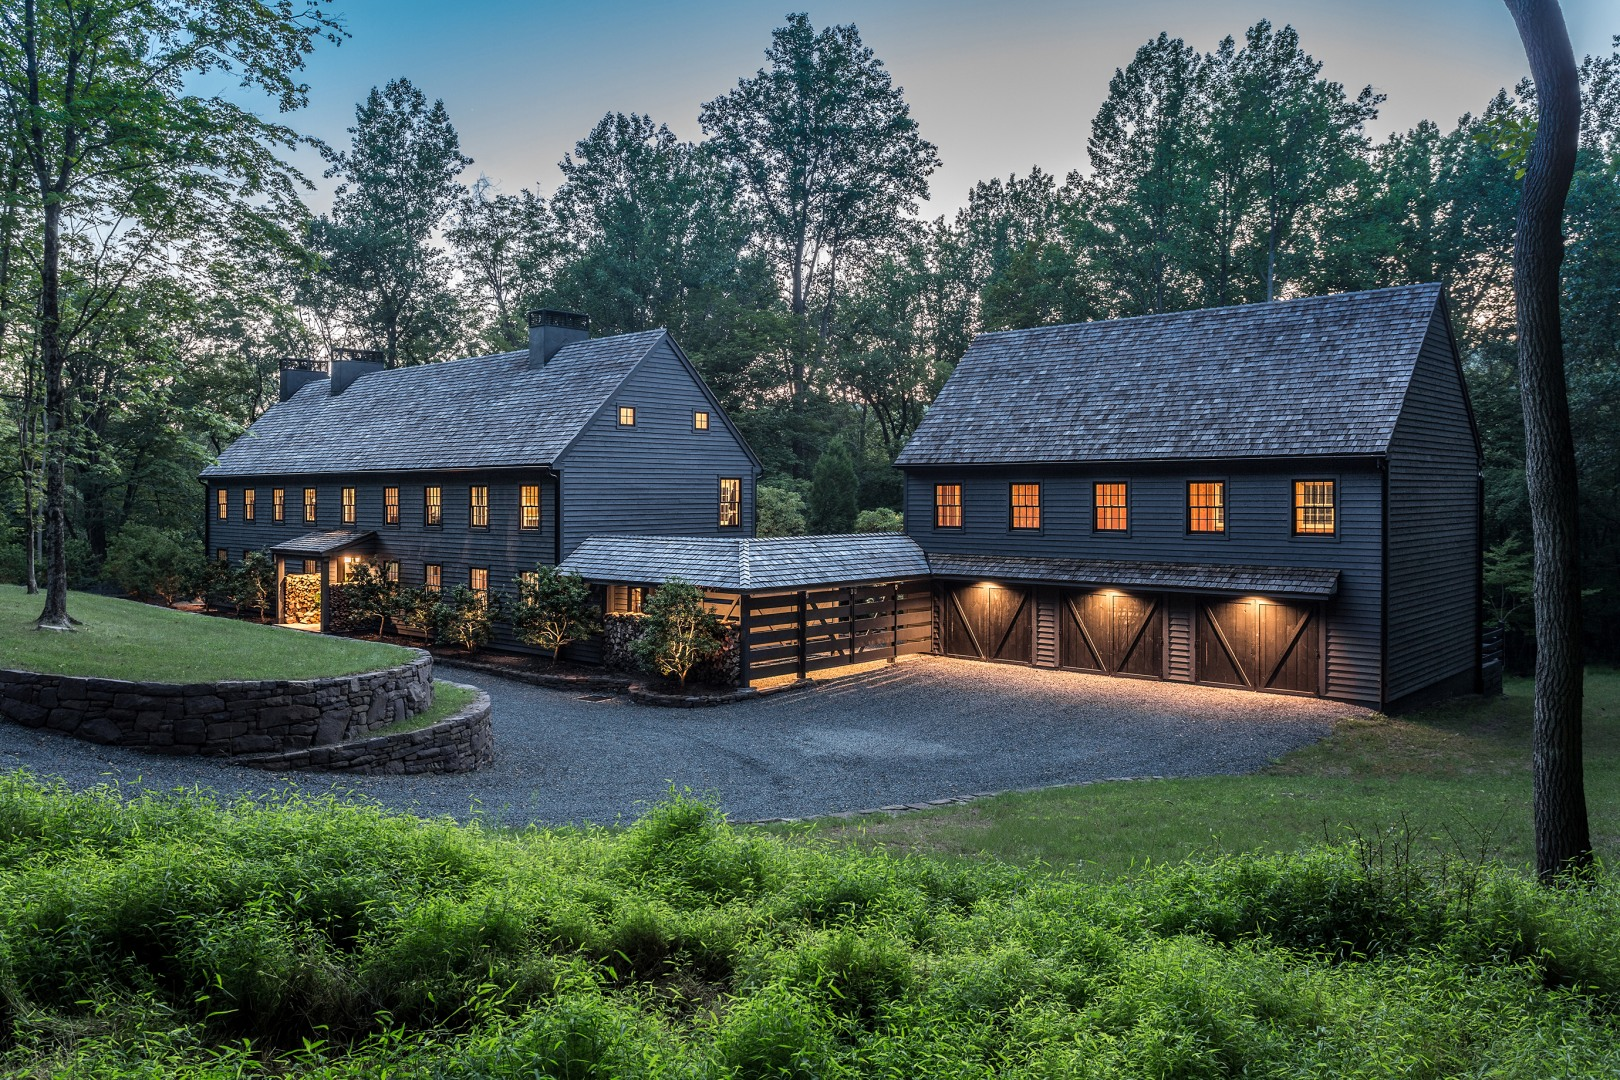 Modern farmhouse on seven bucolic acres asks $3M